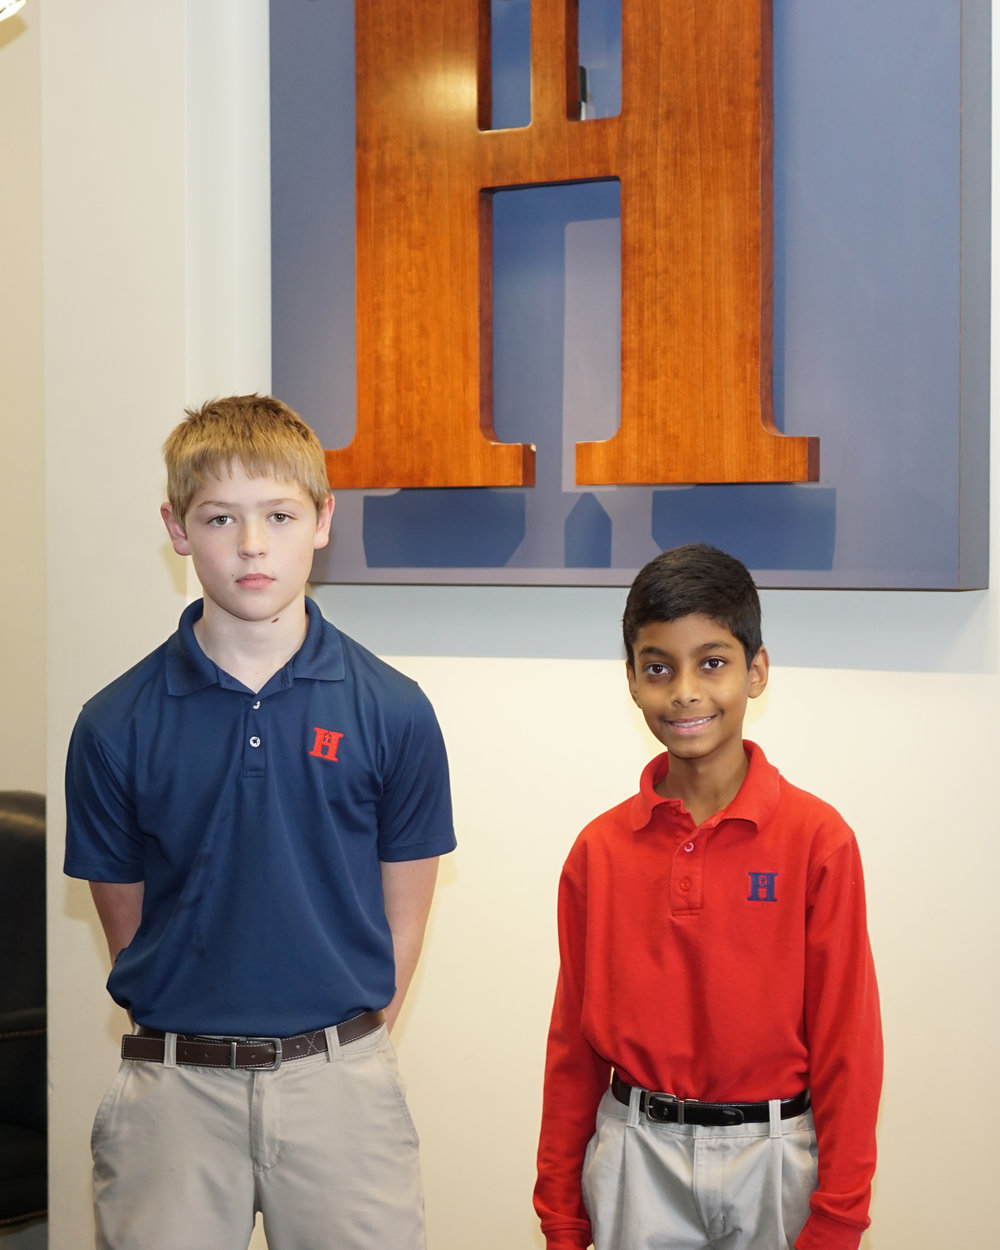 Isaiah Fisher and Akhil Vigneshwaran